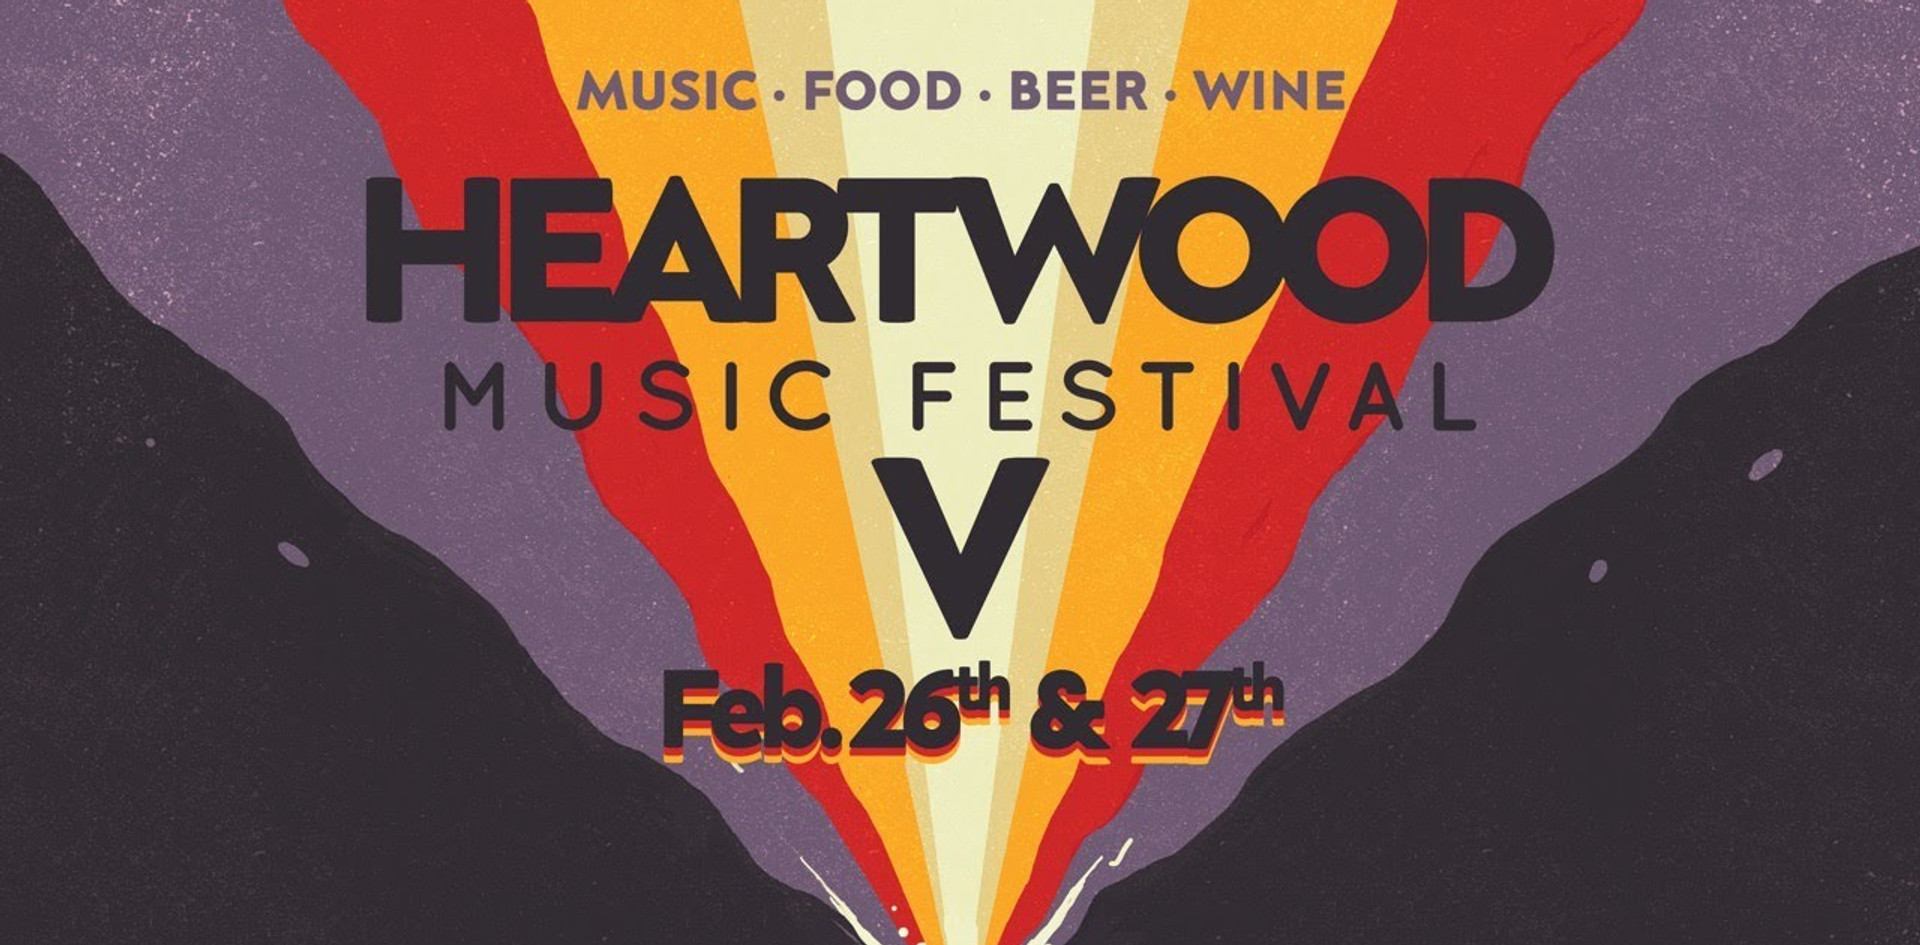 The Late Night Losers at Heartwood Music Festival V